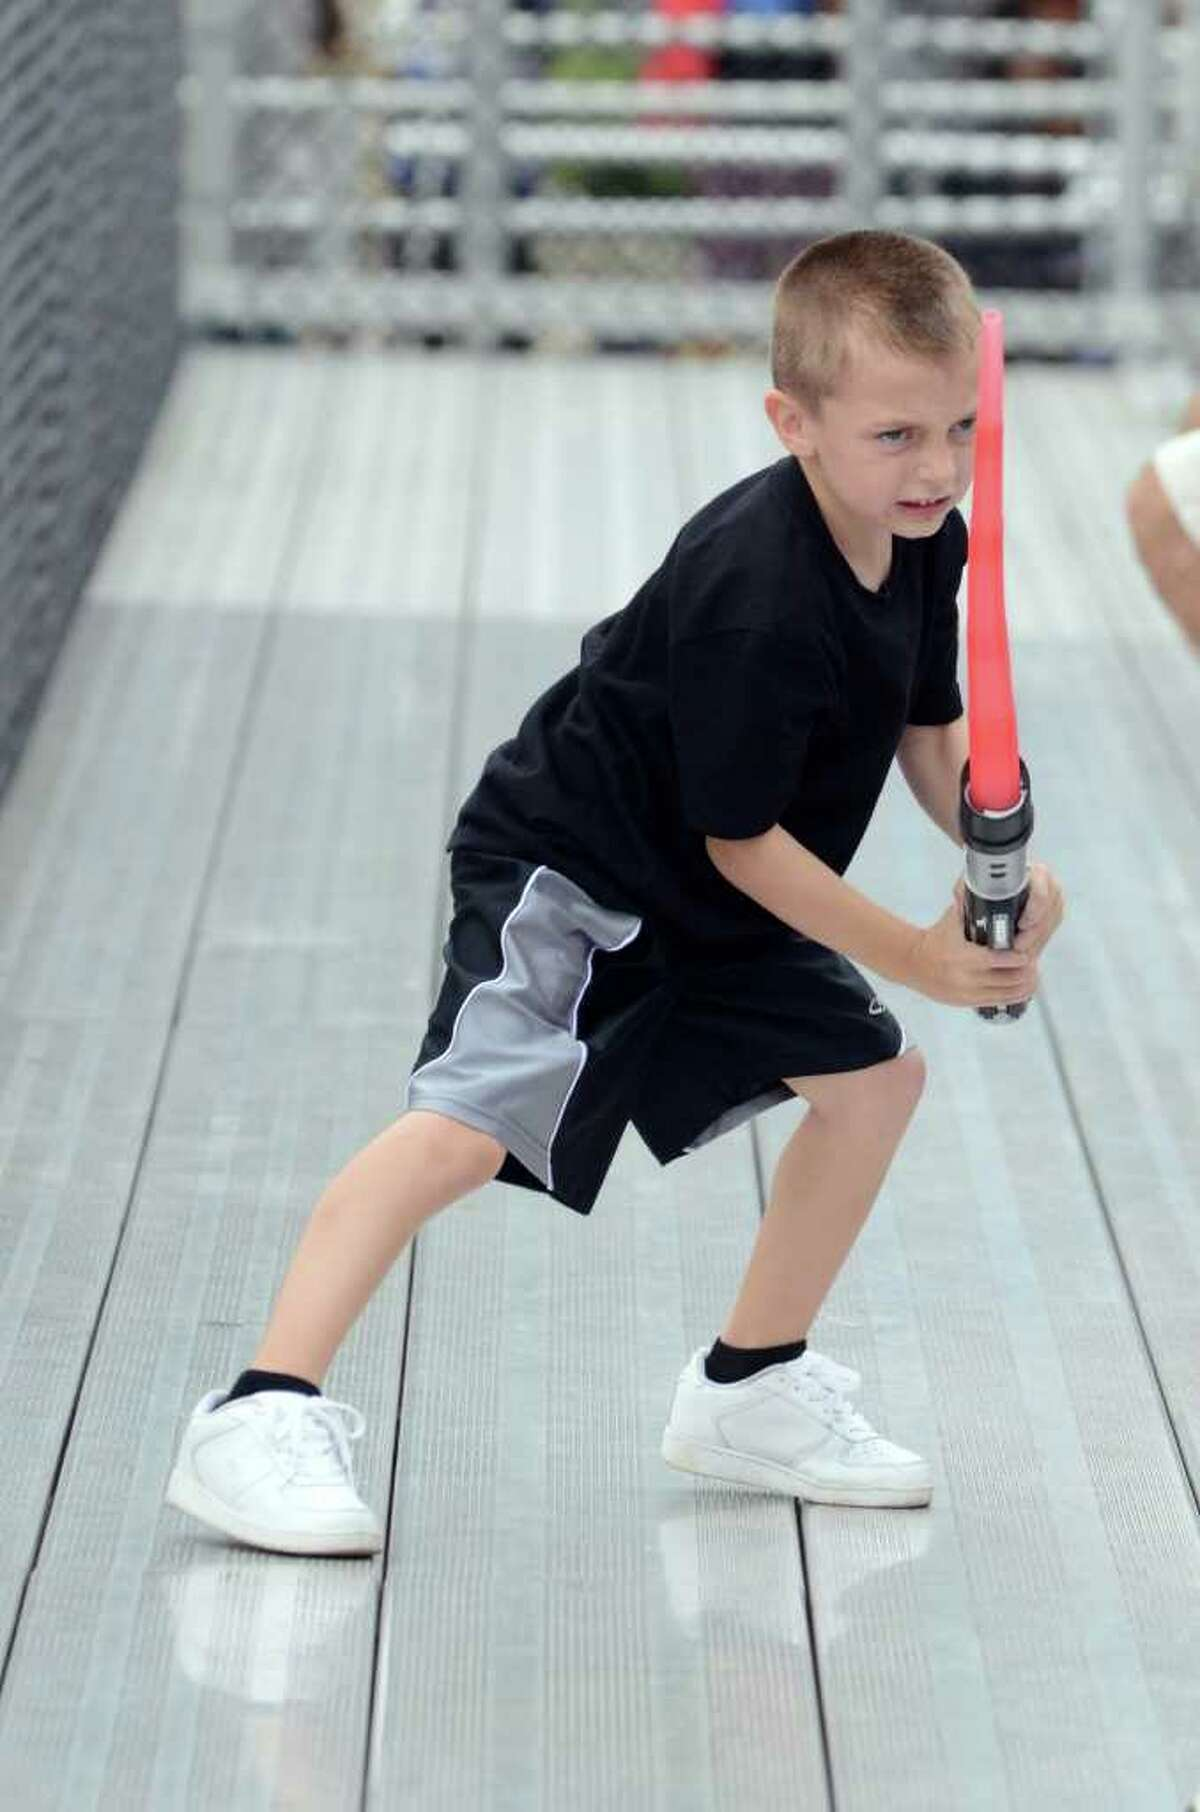 Giancarlo Montanaro, 6, of Trumbull wields his lightsaber in the stands during the Westhill vs Trumbull football game at Westhill High School in Stamford on Saturday, Sept. 24, 2011.